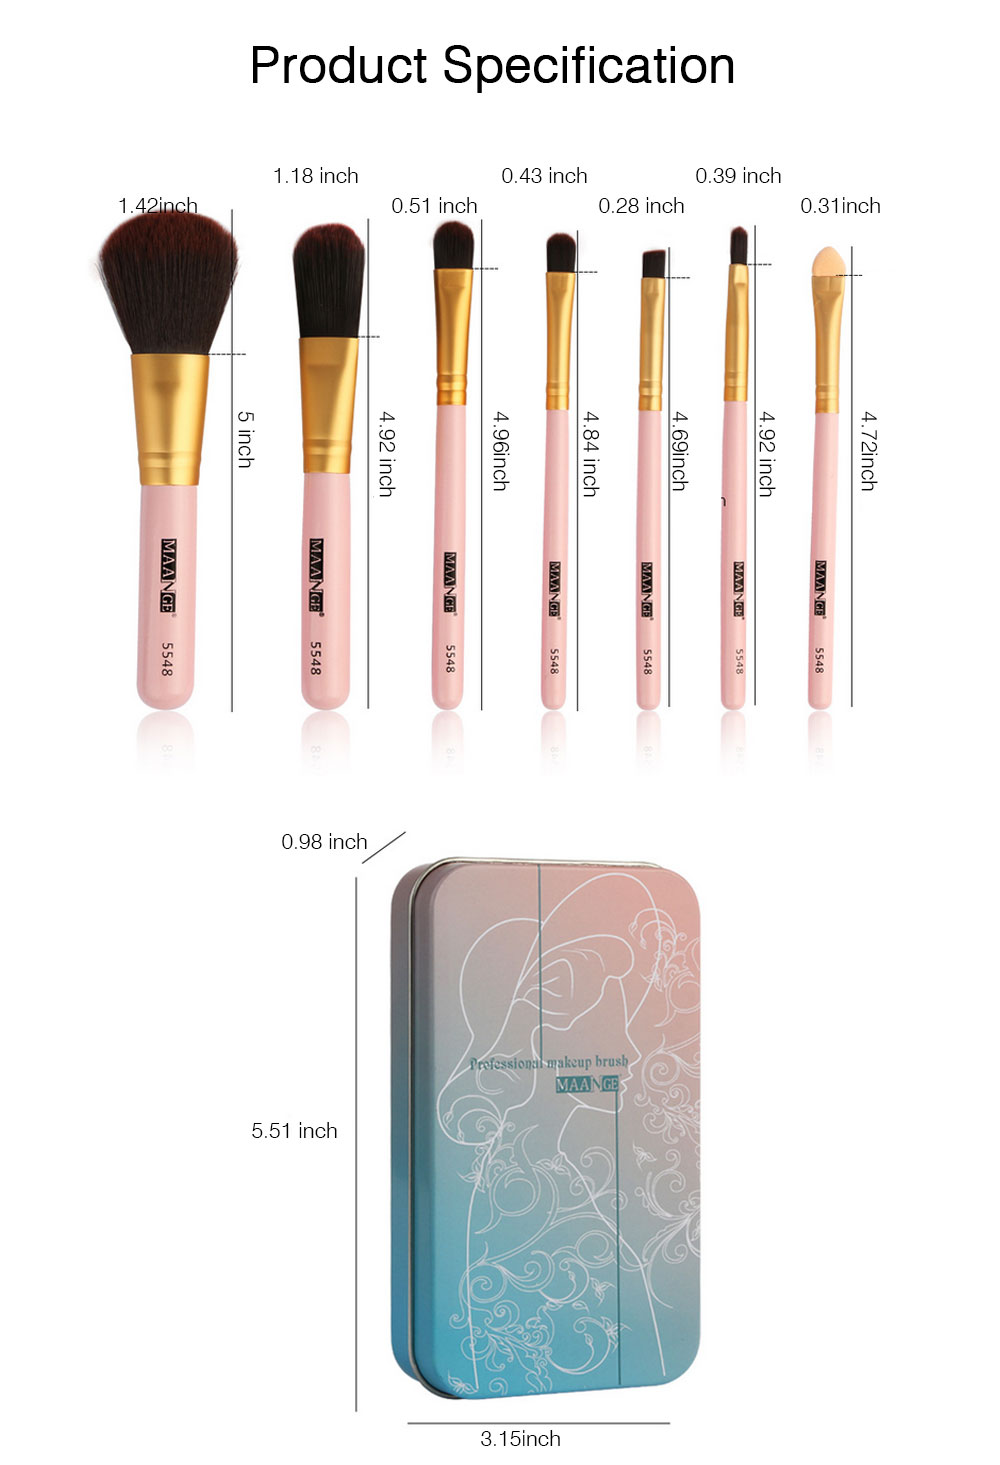 Stylish 7PCS Professional Makeup Brushes Set with Iron Box, Elegant Finest Cosmetic Brushes Suit For Makeup Beginners 7